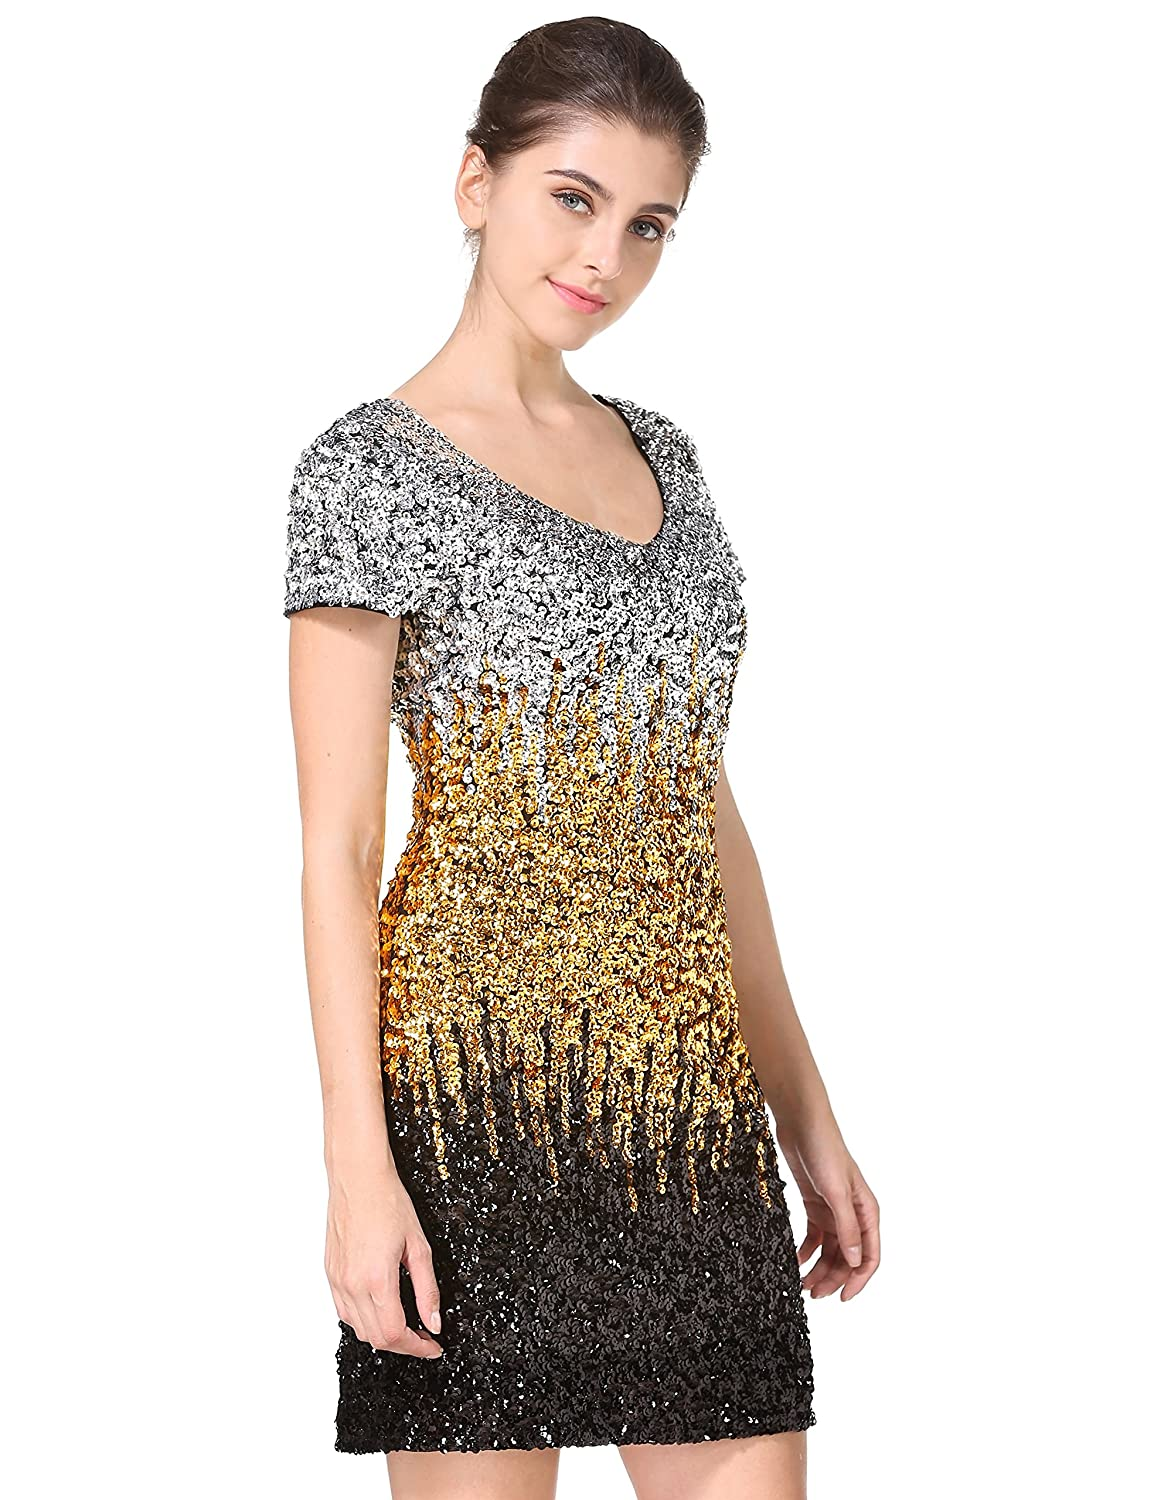 MANER Women's Sequin Glitter Short Sleeve Dress Sexy V Neck Mini Party Club Bodycon Gowns